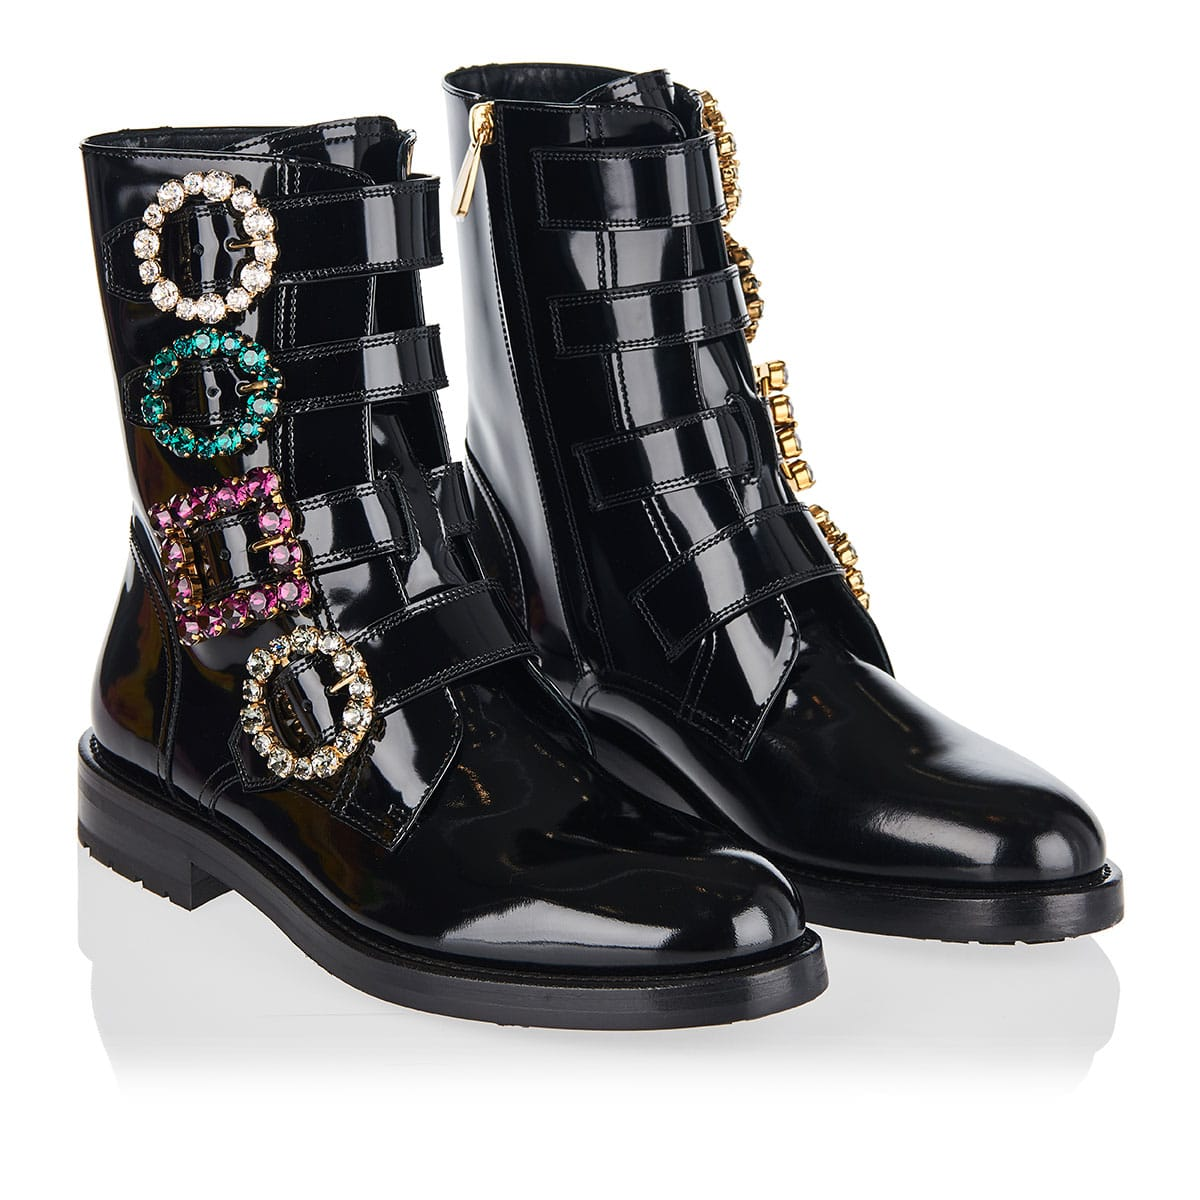 Patent leather boots with jeweled buckles